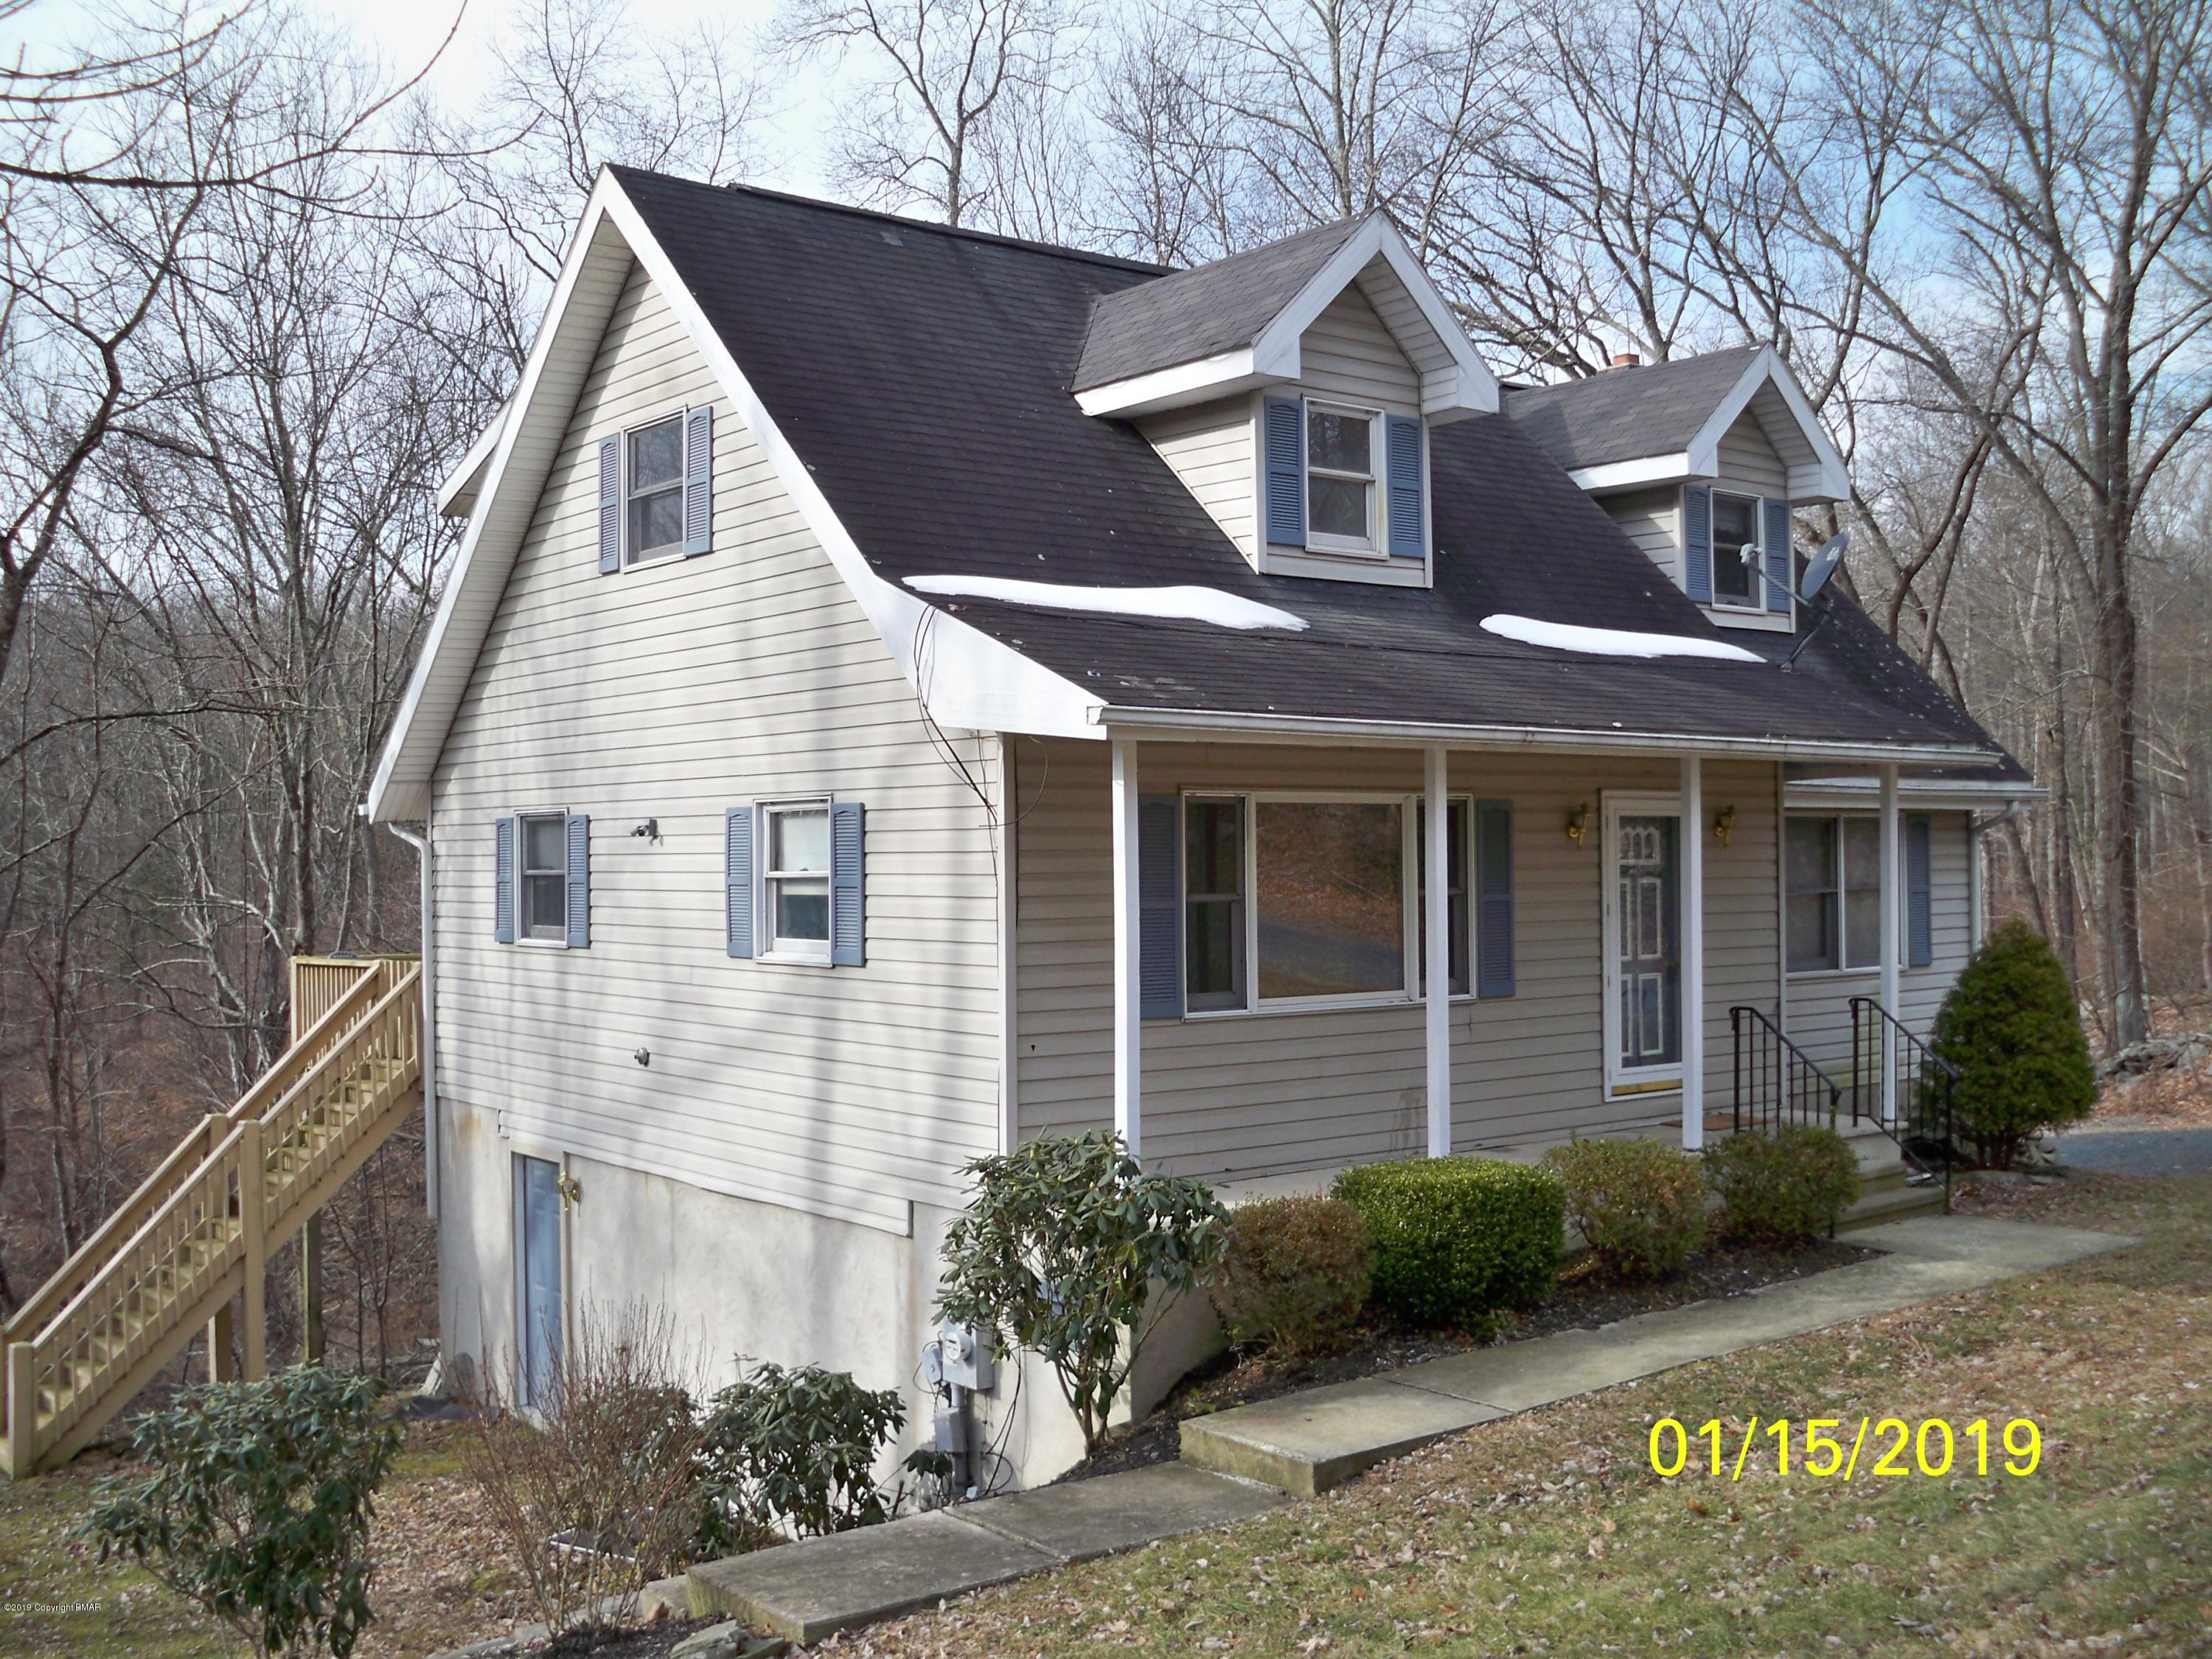 277 Cays Rd, Stroudsburg, PA 18360